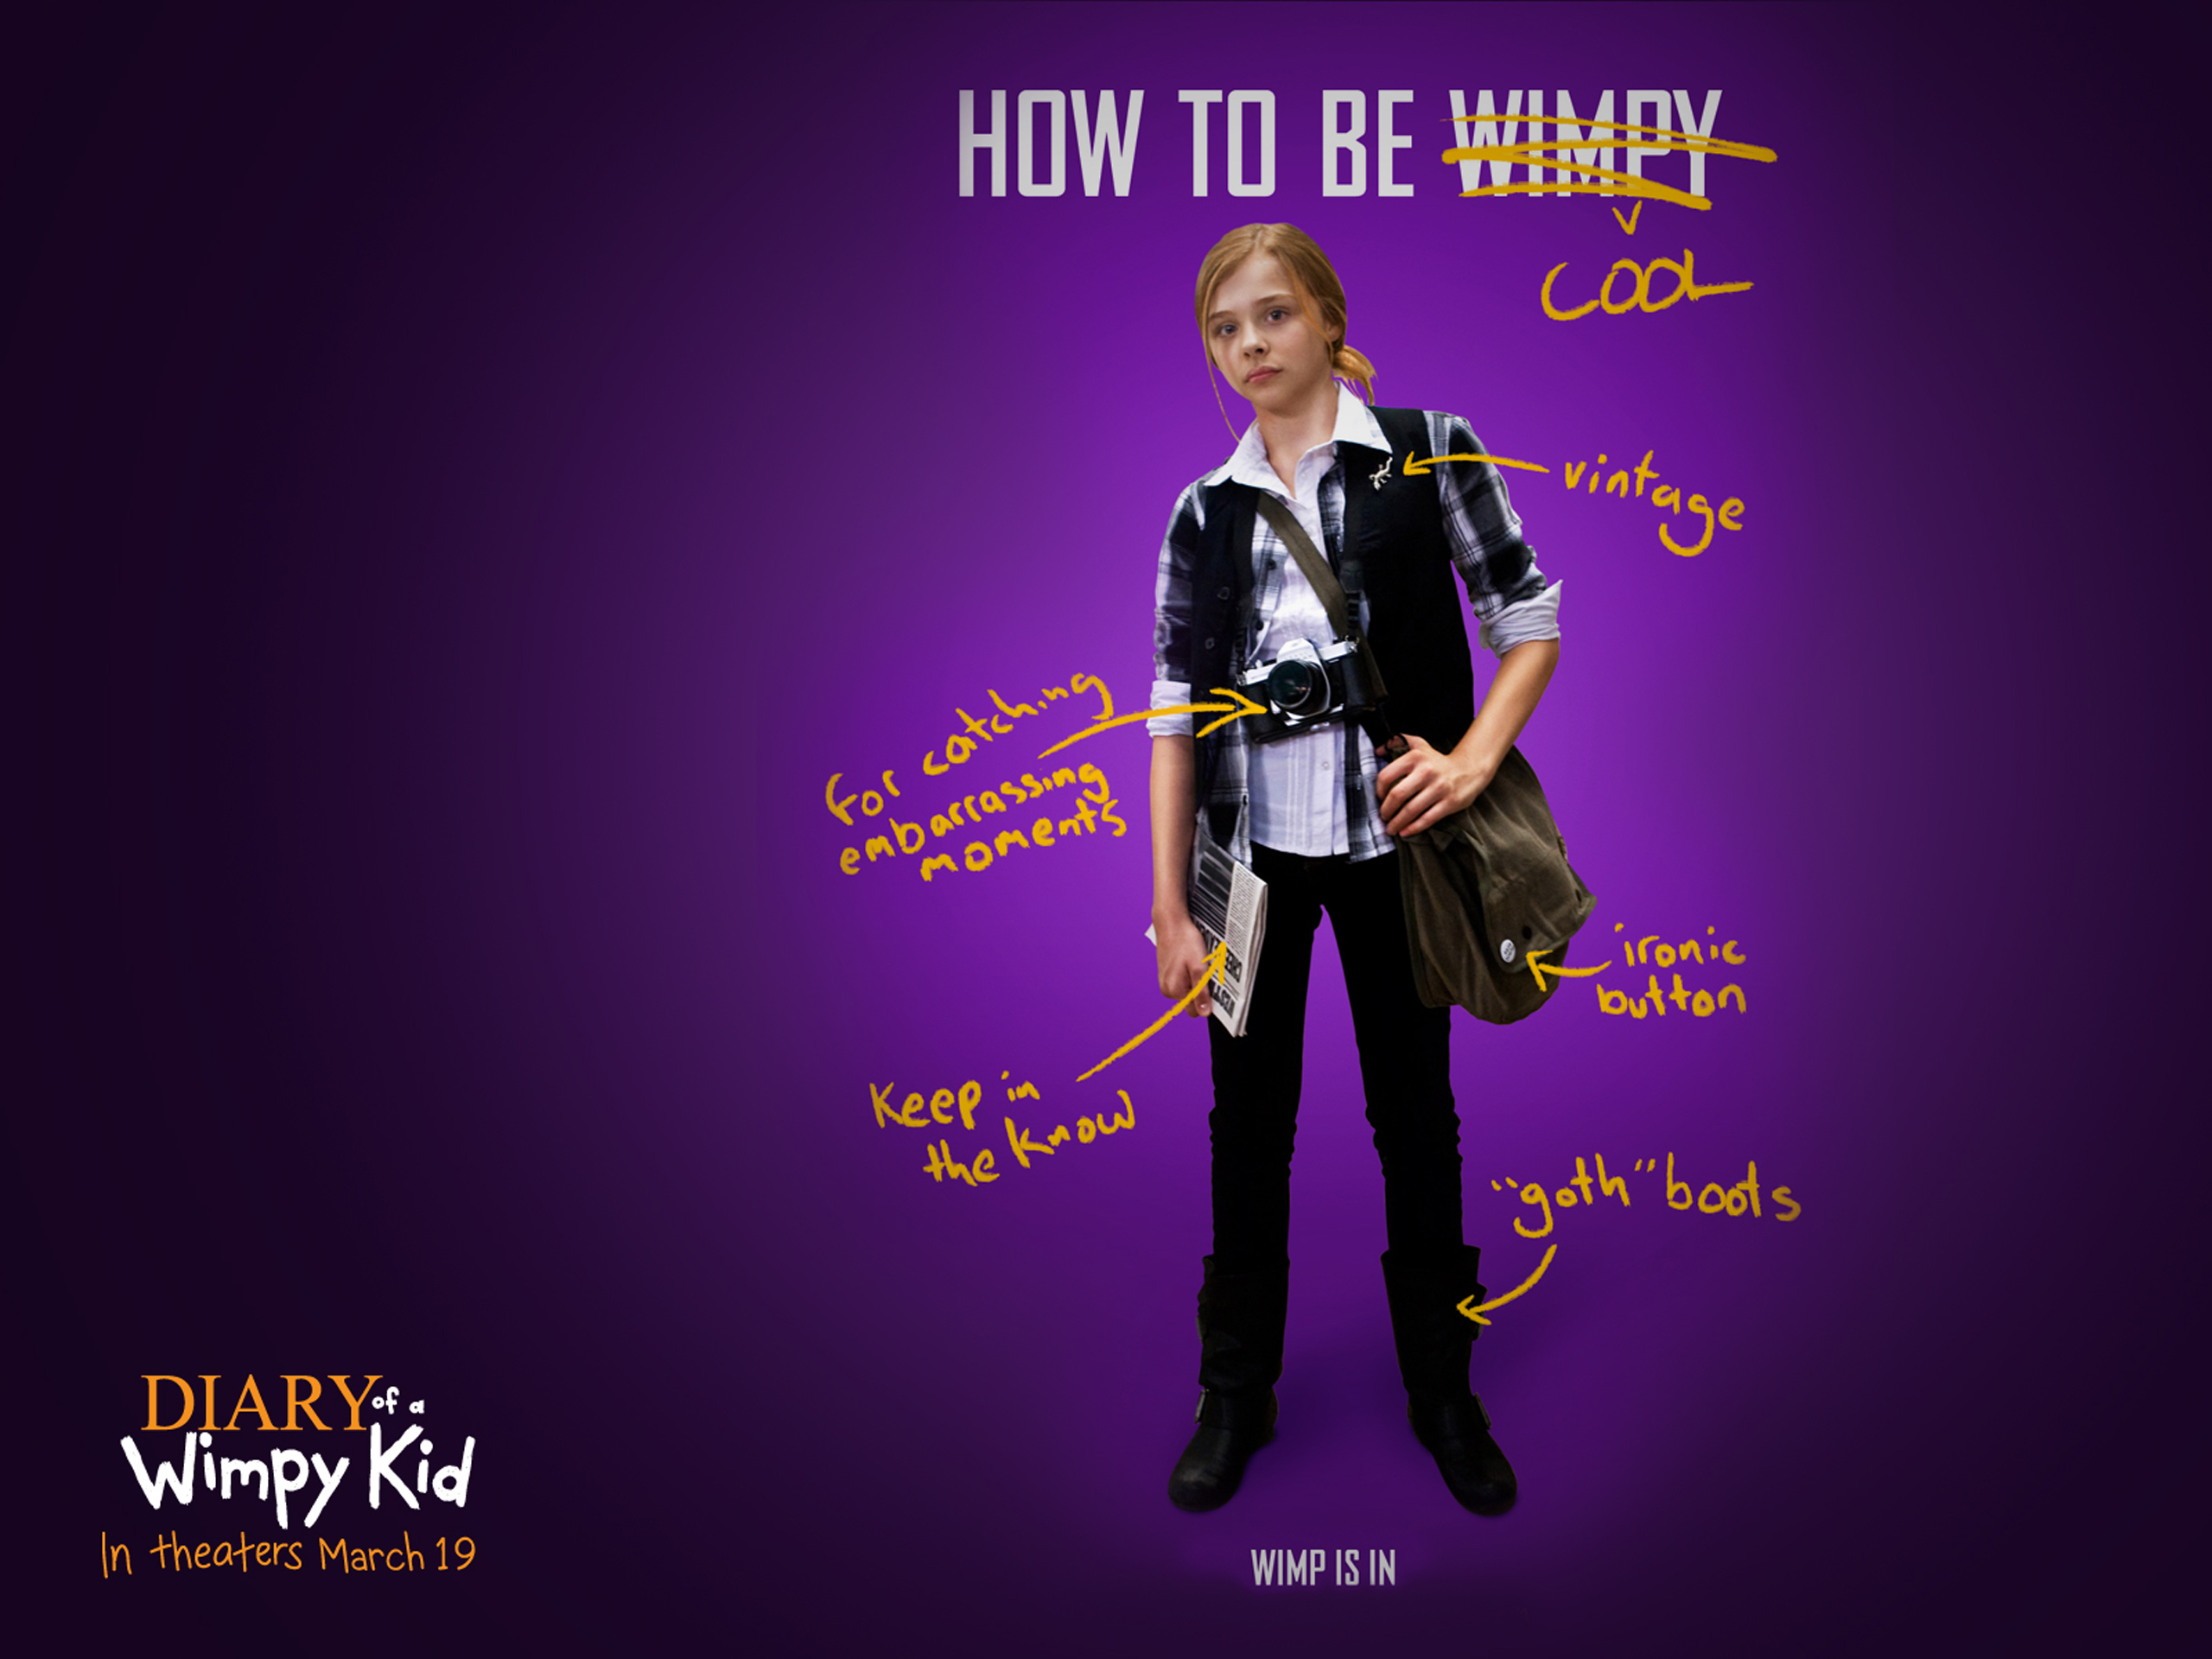 Cool Wallpaper Music Kid - Chloe_Moretz_in_Diary_of_a_Wimpy_Kid  Trends_904973.jpg